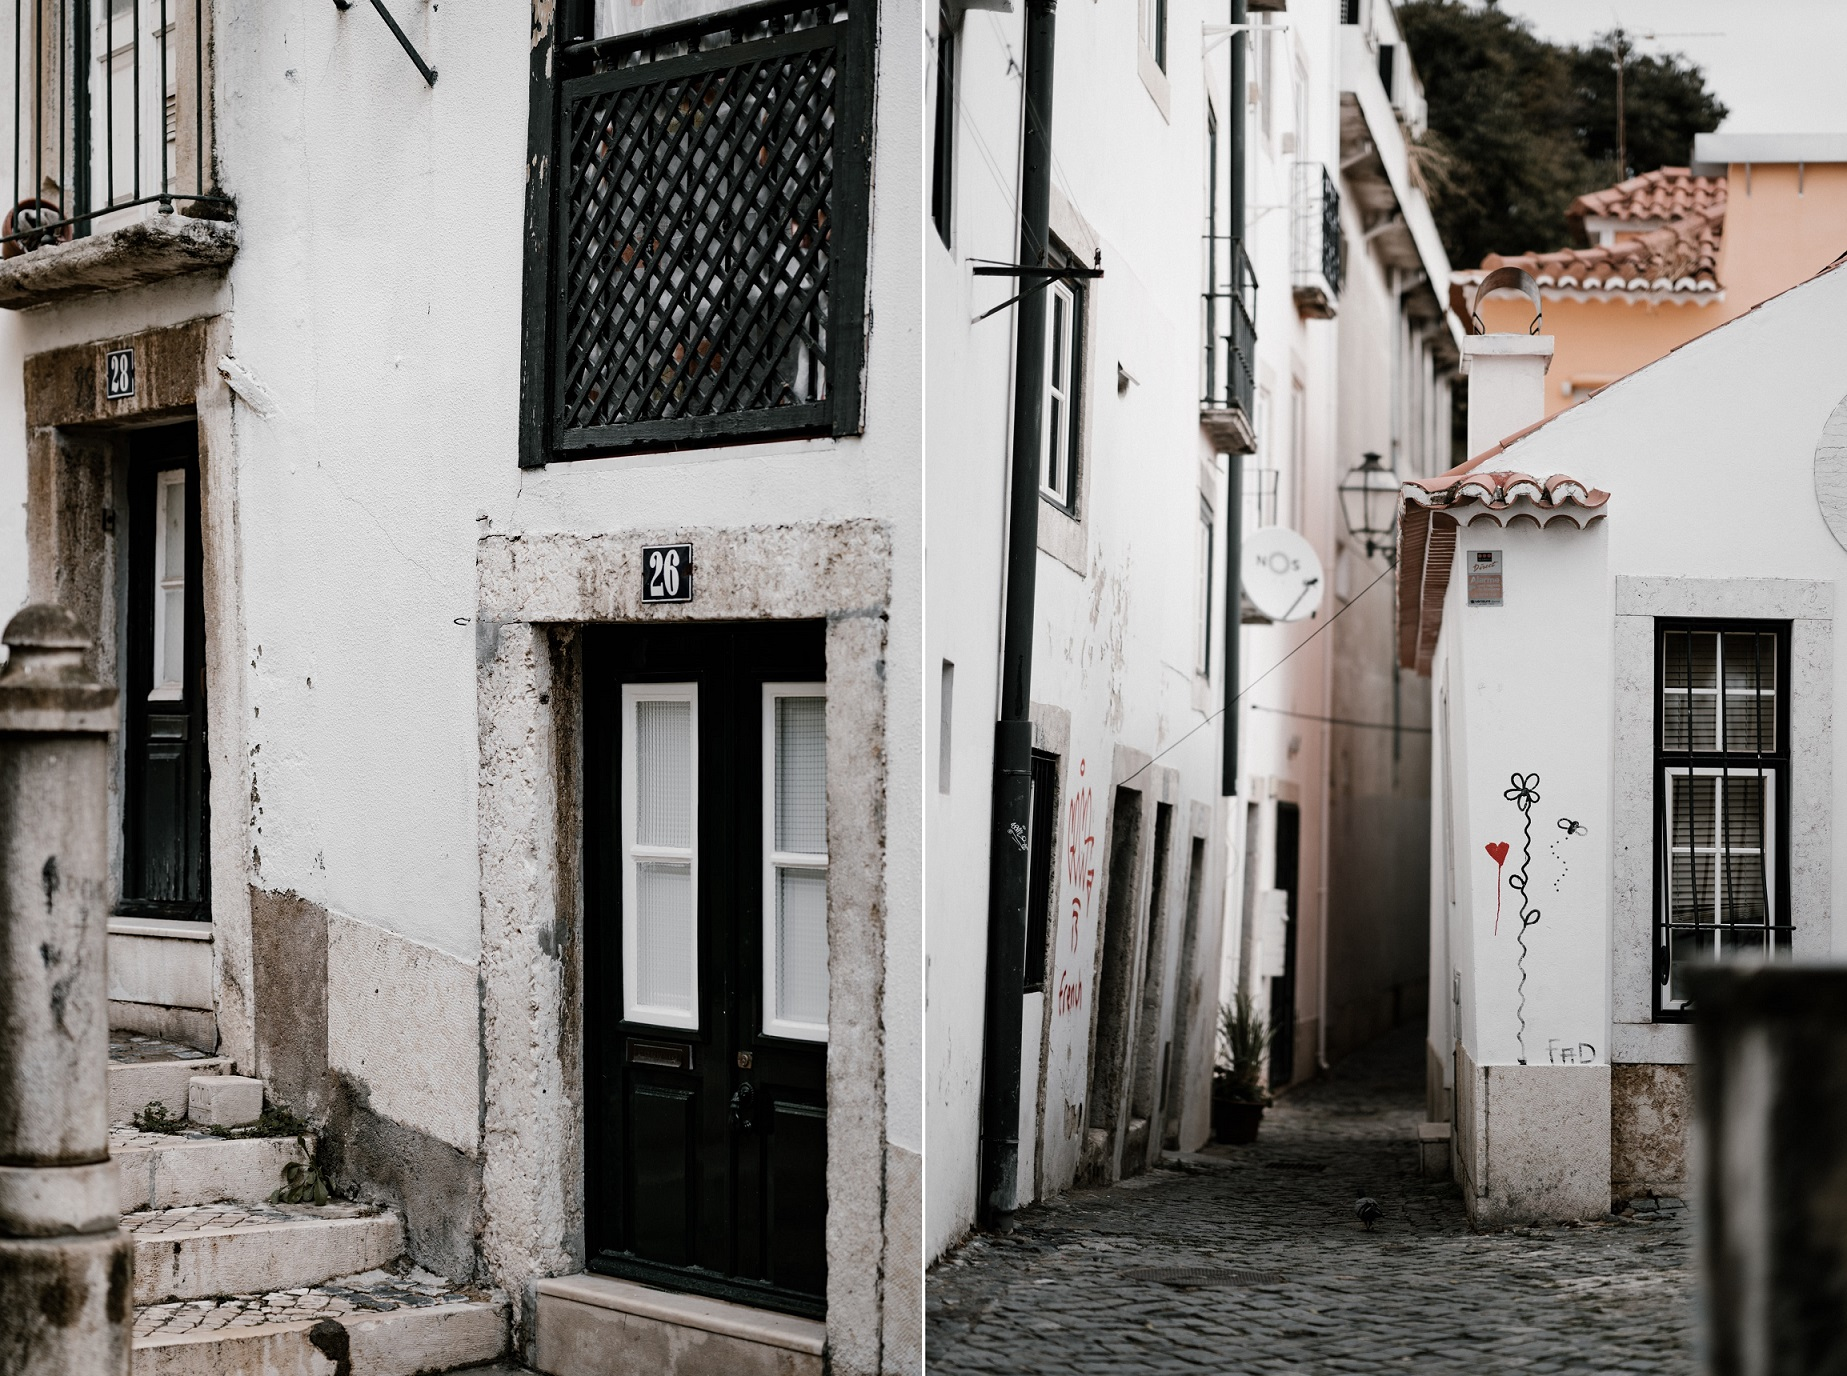 A quiet and beautiful neighborhood in Lisbon, Portugal